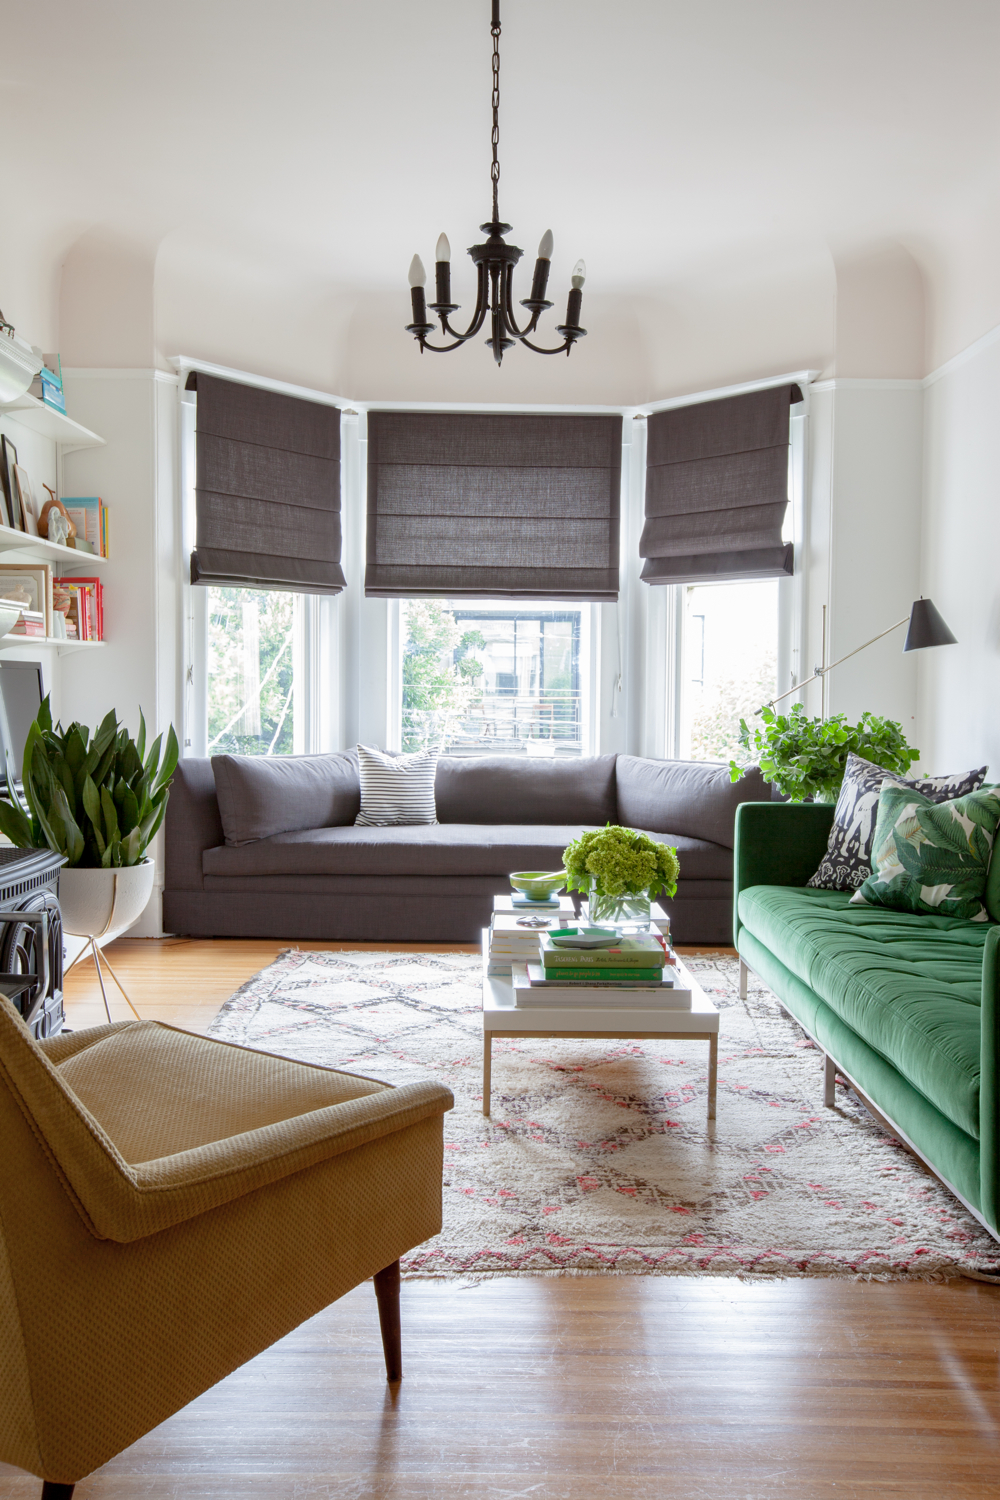 How to Style a Bay Window | Miranda Schroeder Blog